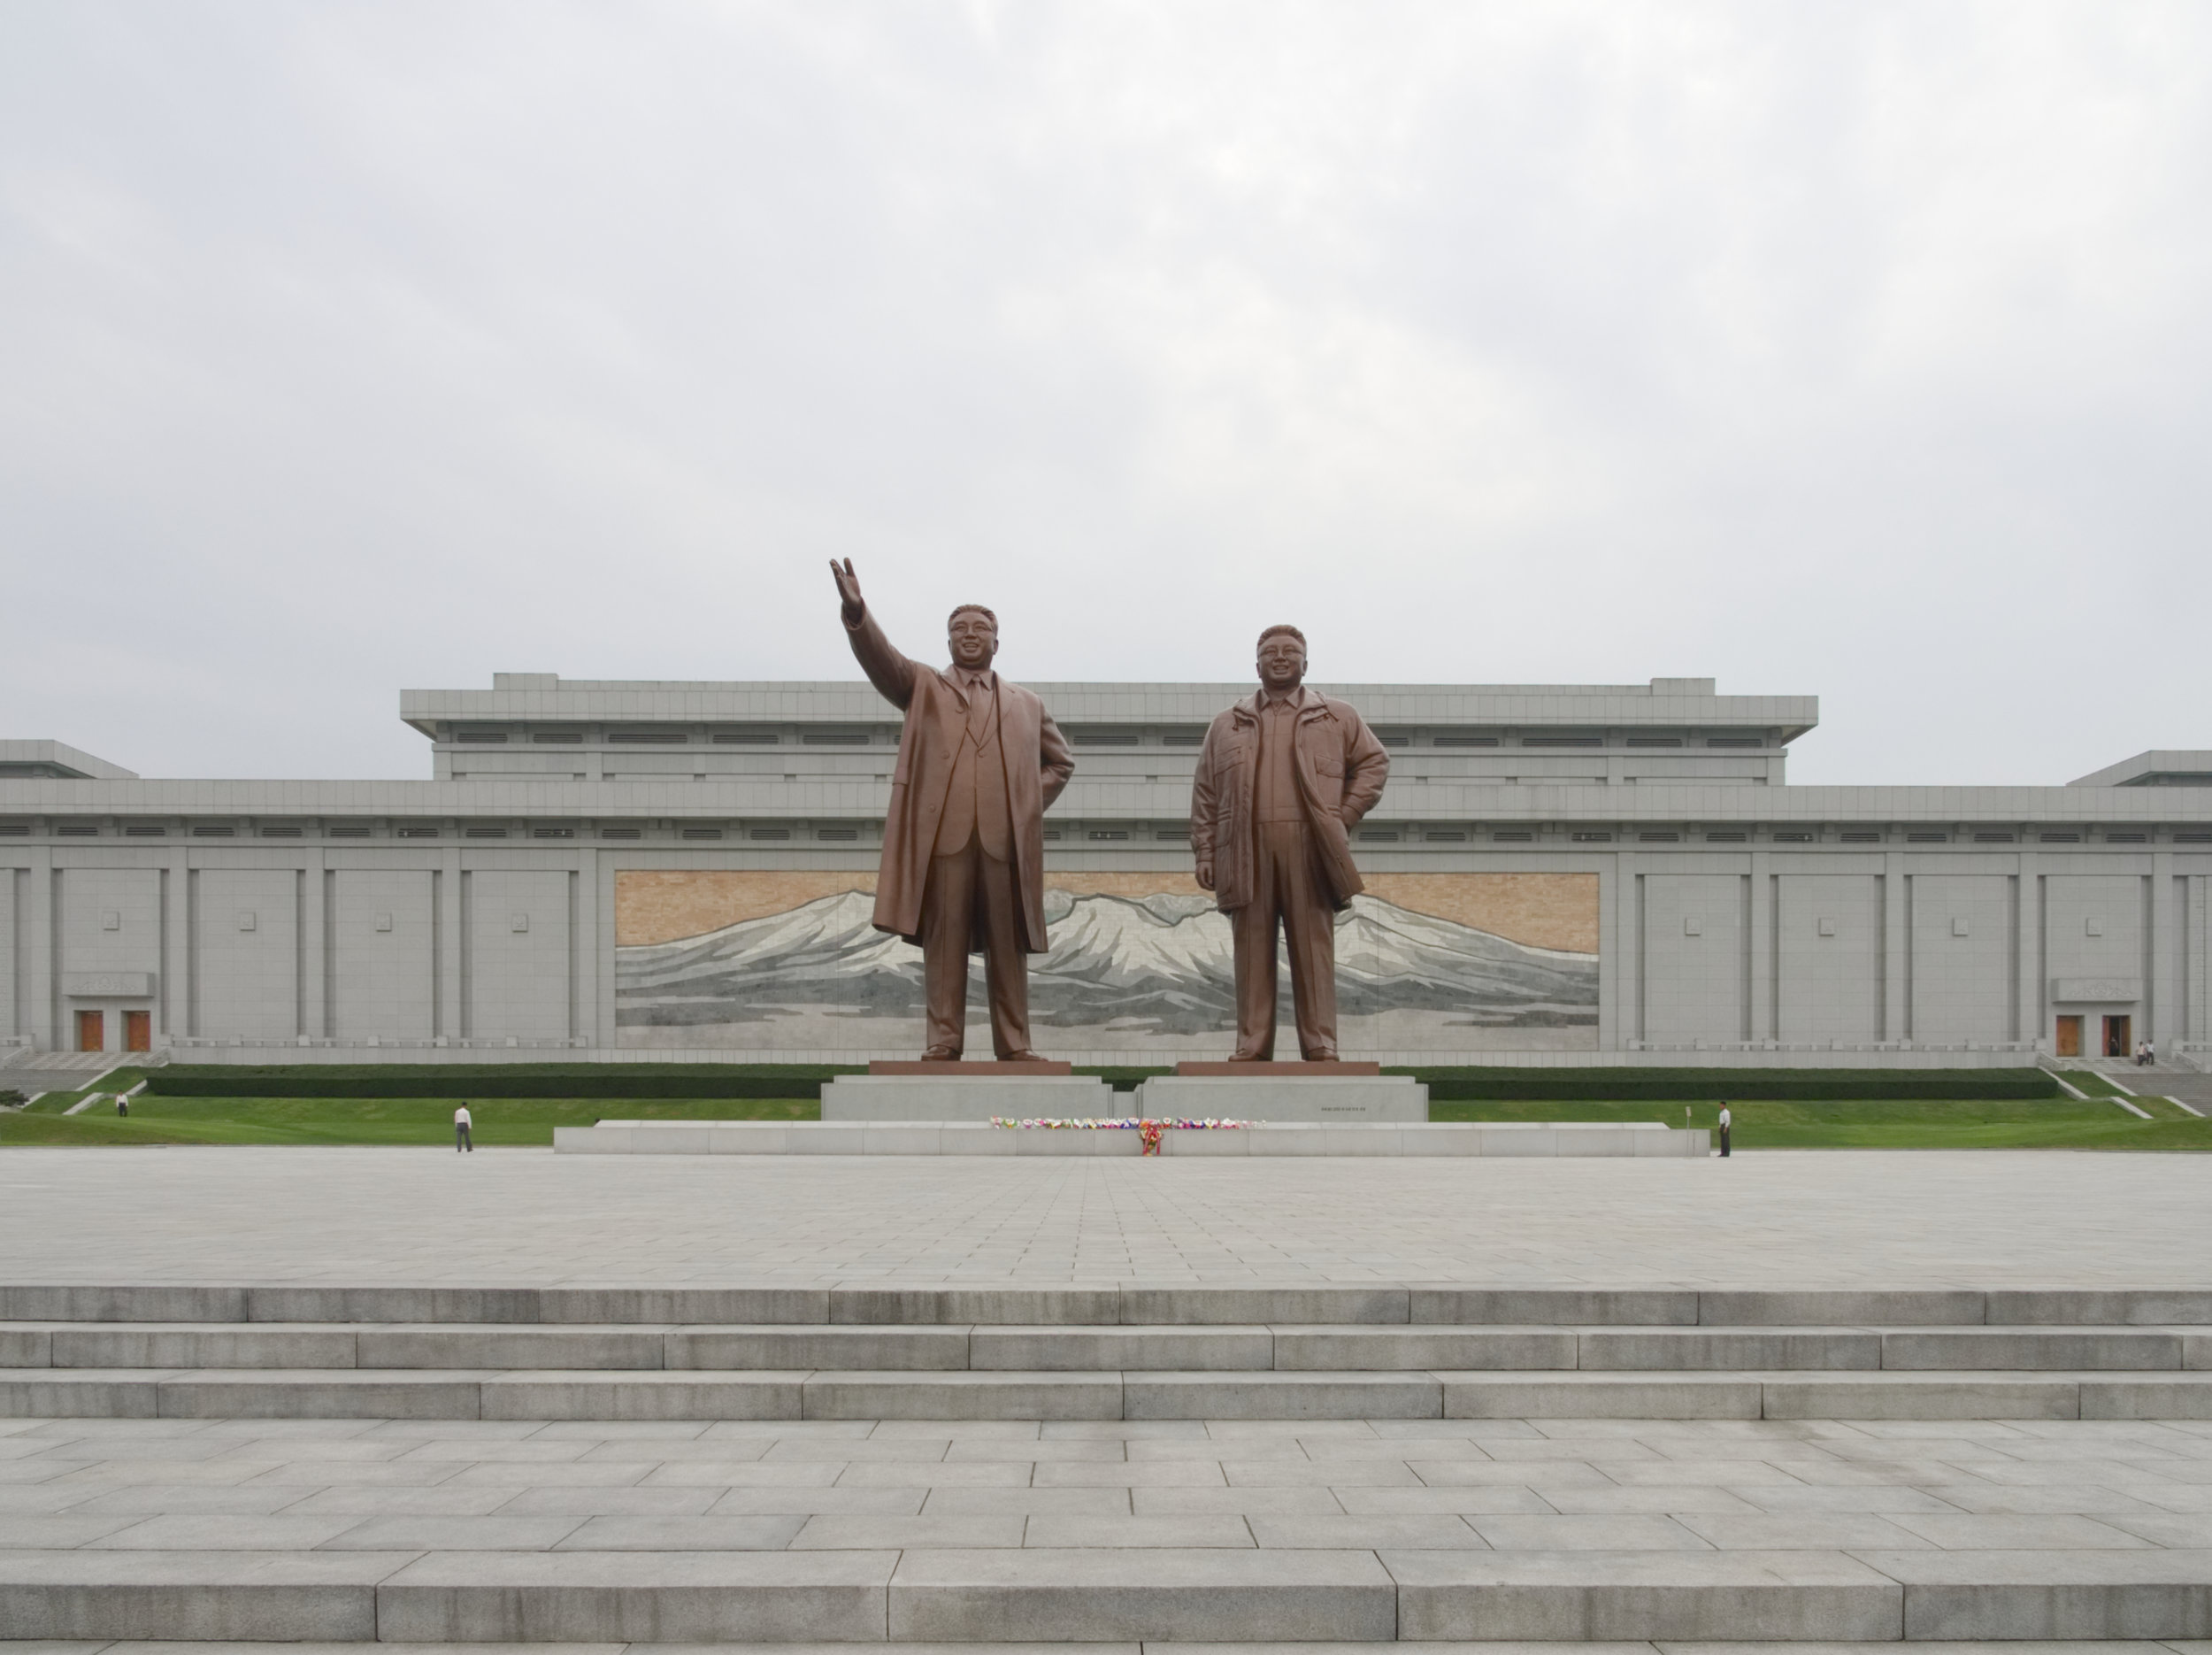 Flowers for the great leaders at the Mansudae Grand Monument